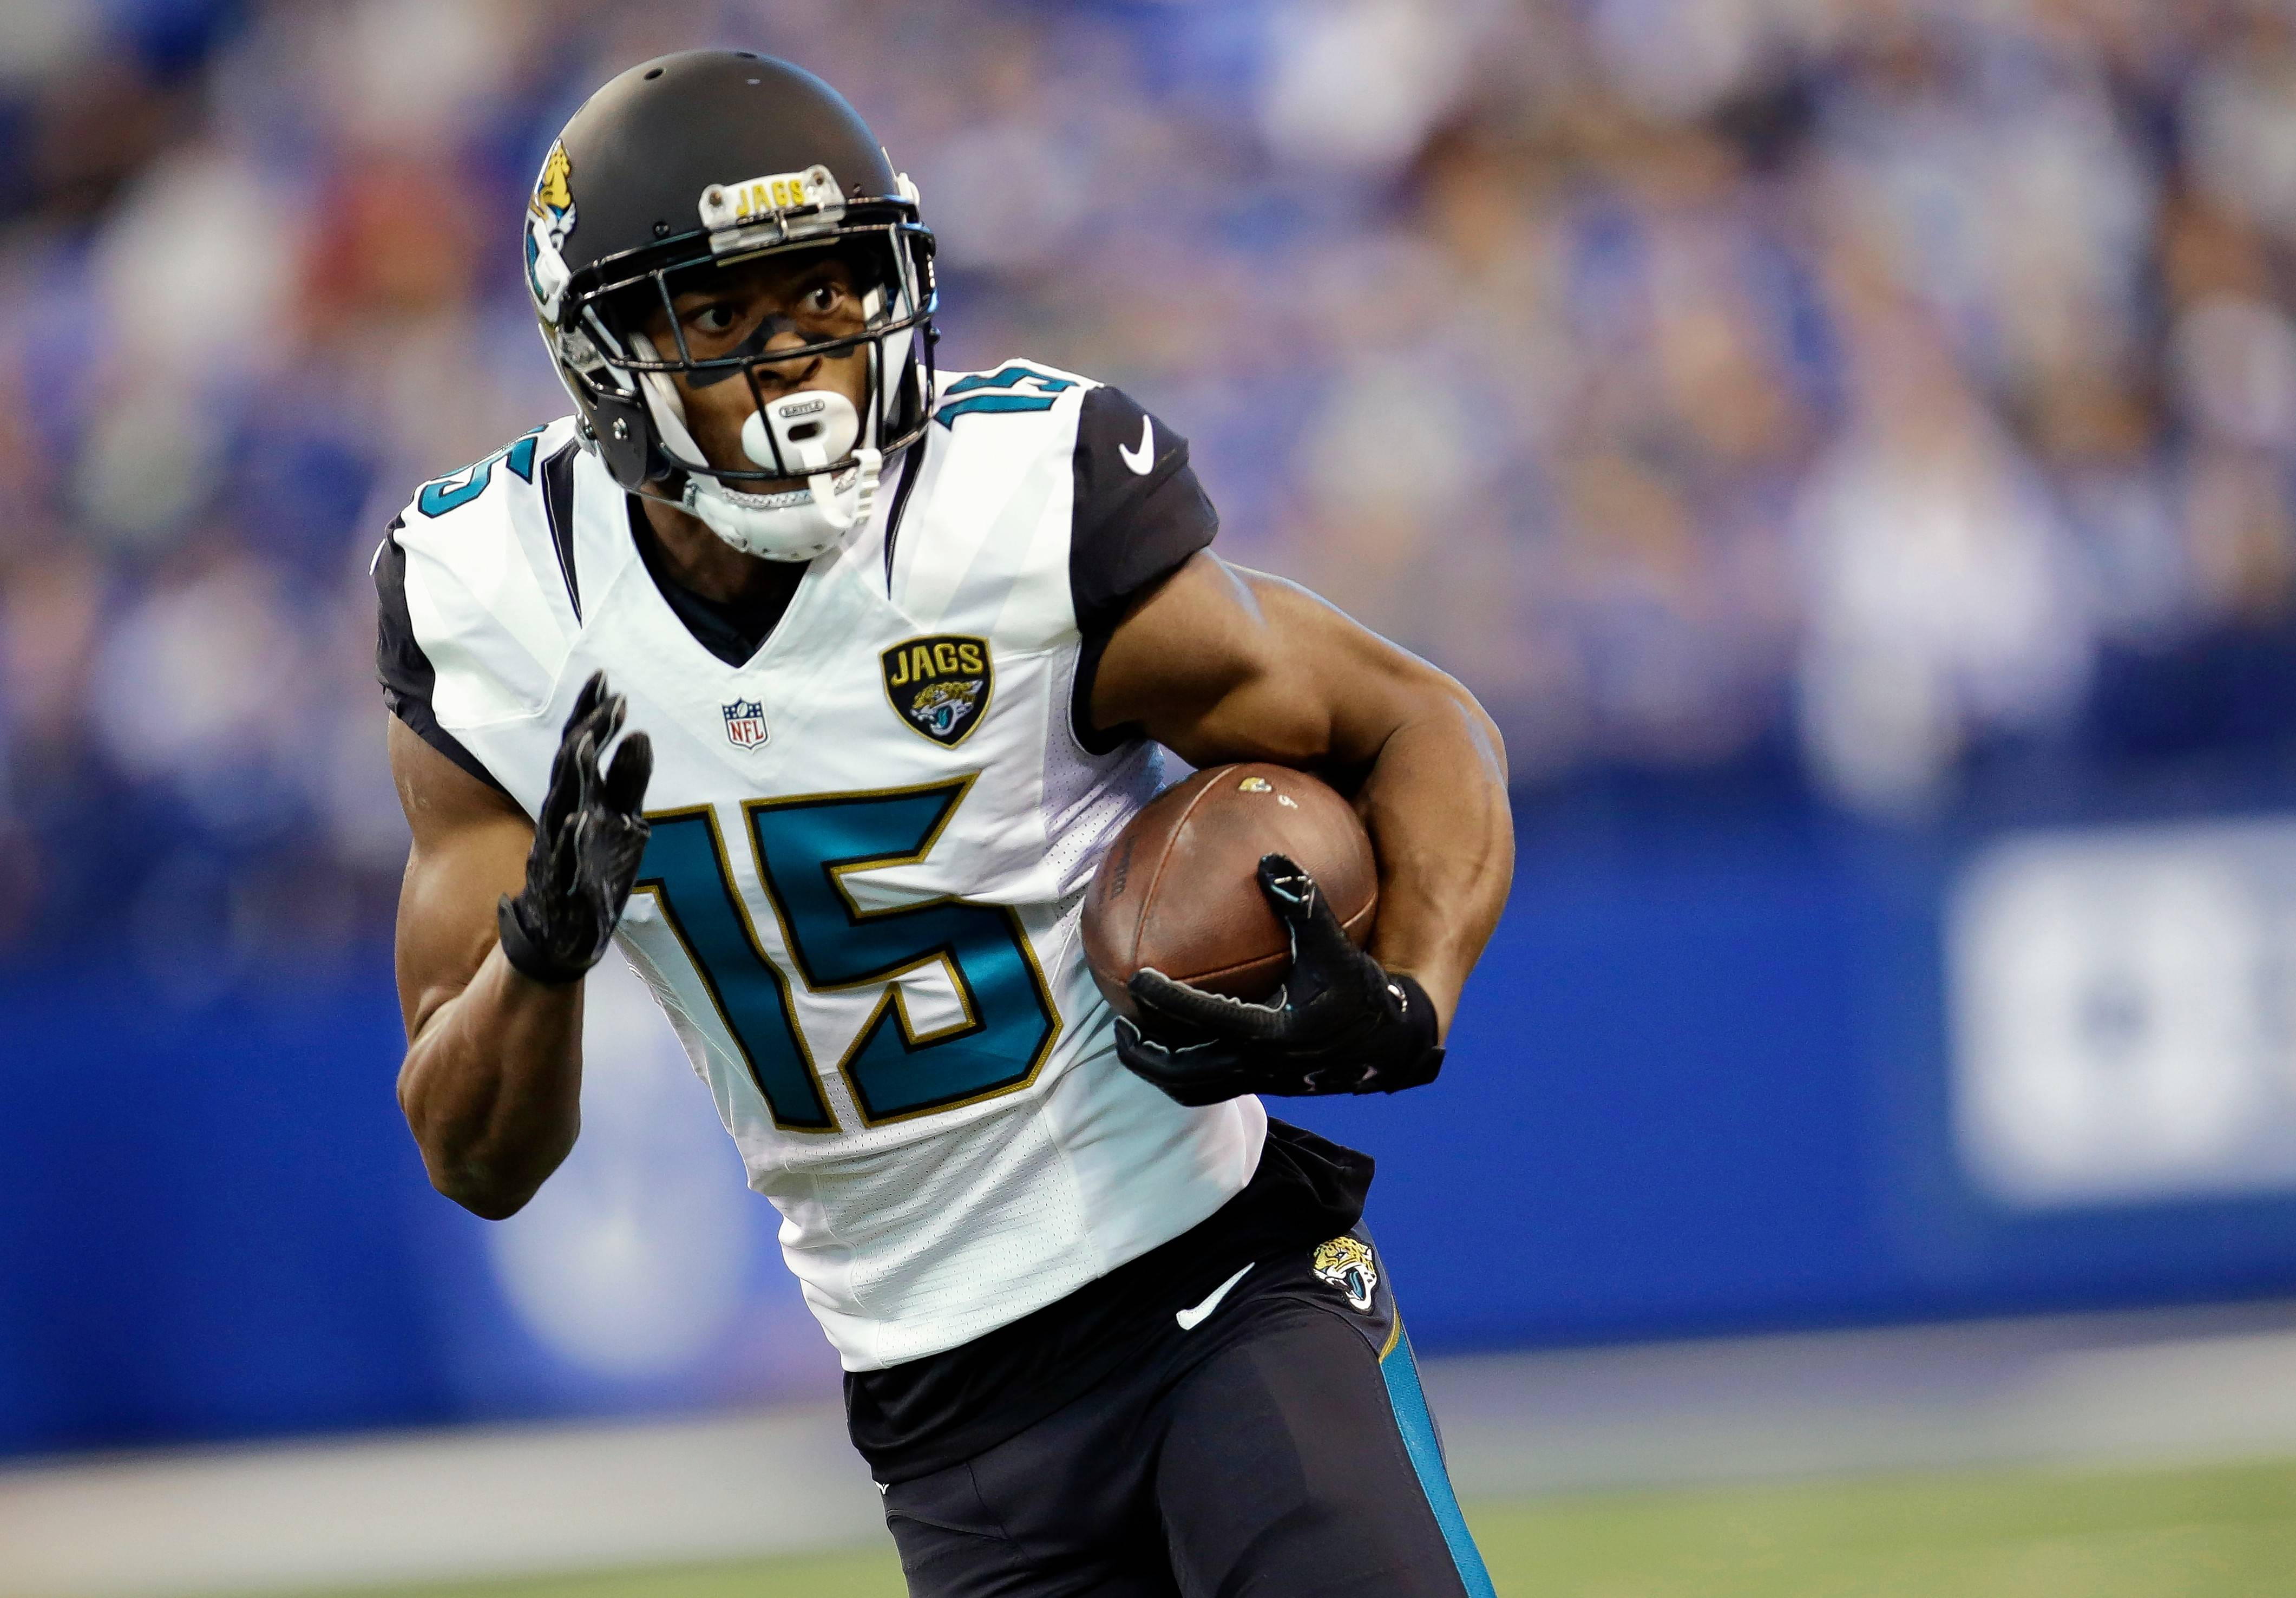 Former Pro Bowl wide receiver Allen Robinson, who missed almost all of last season due to a knee injury, is set to sign with the Chicago Bears on Wednesday, sources are reporting.